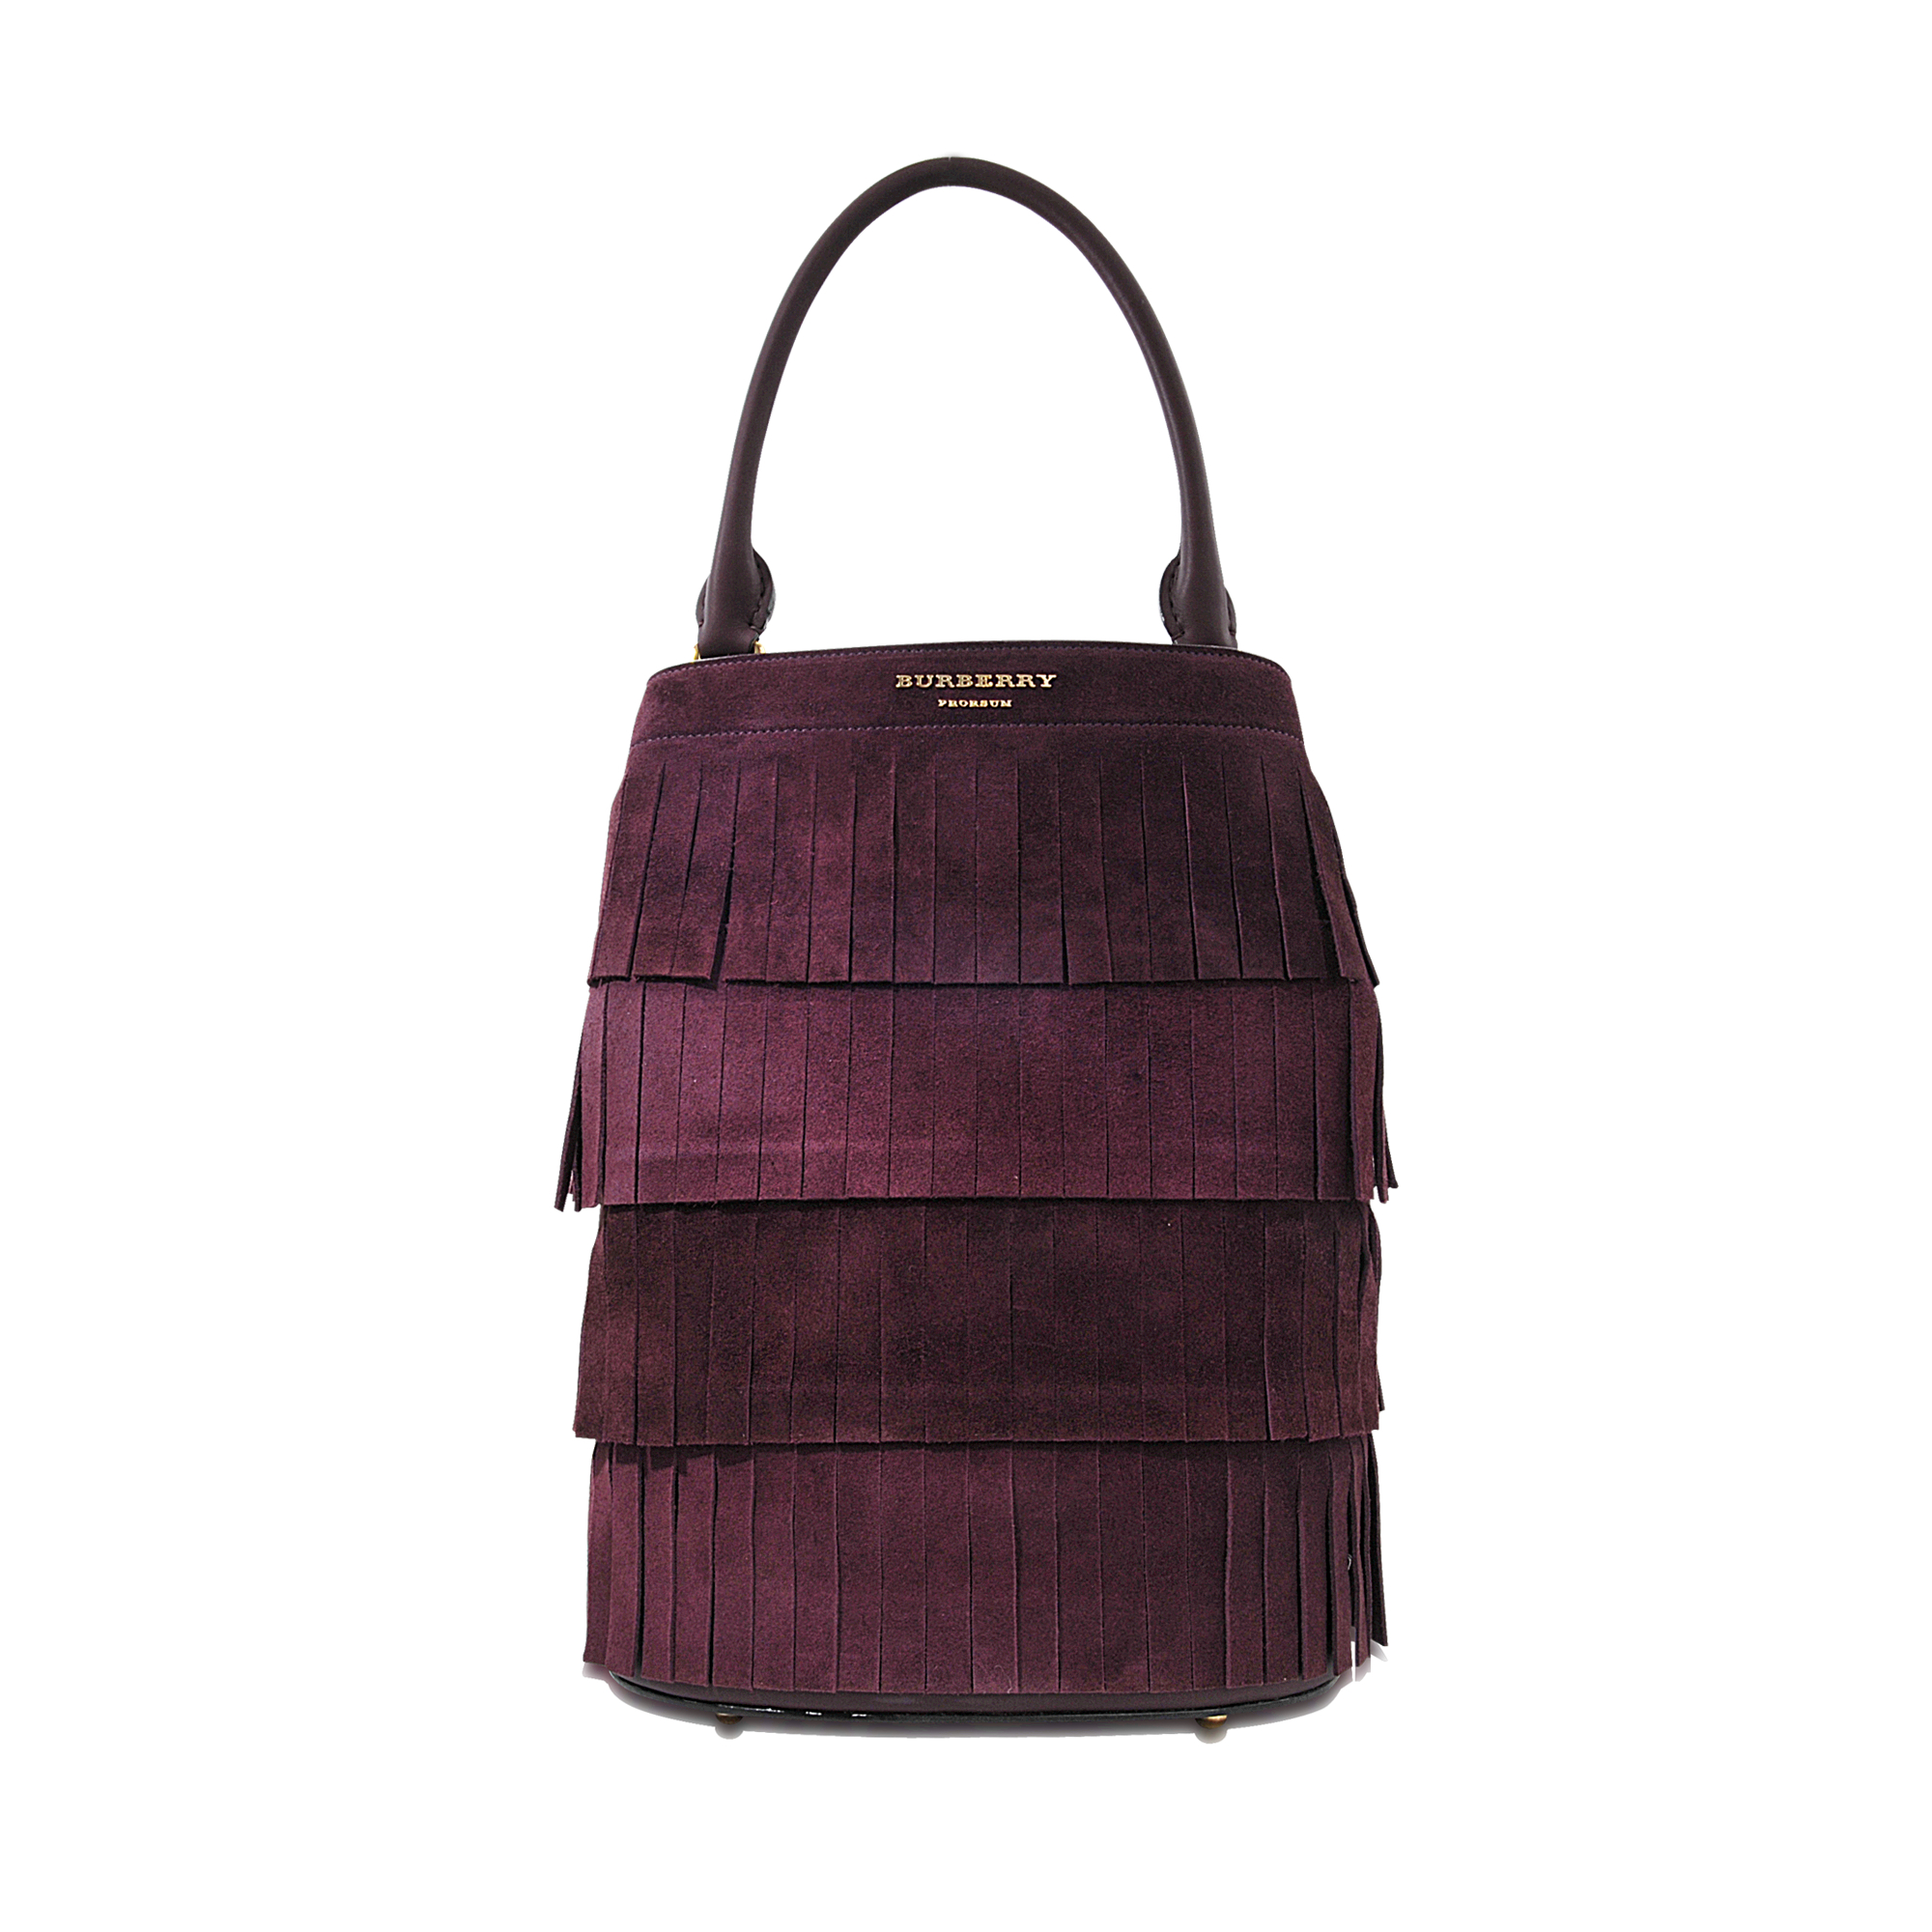 b216b4bfe2c Burberry Prorsum Suede Bucket Bag With Fringe in Purple - Lyst